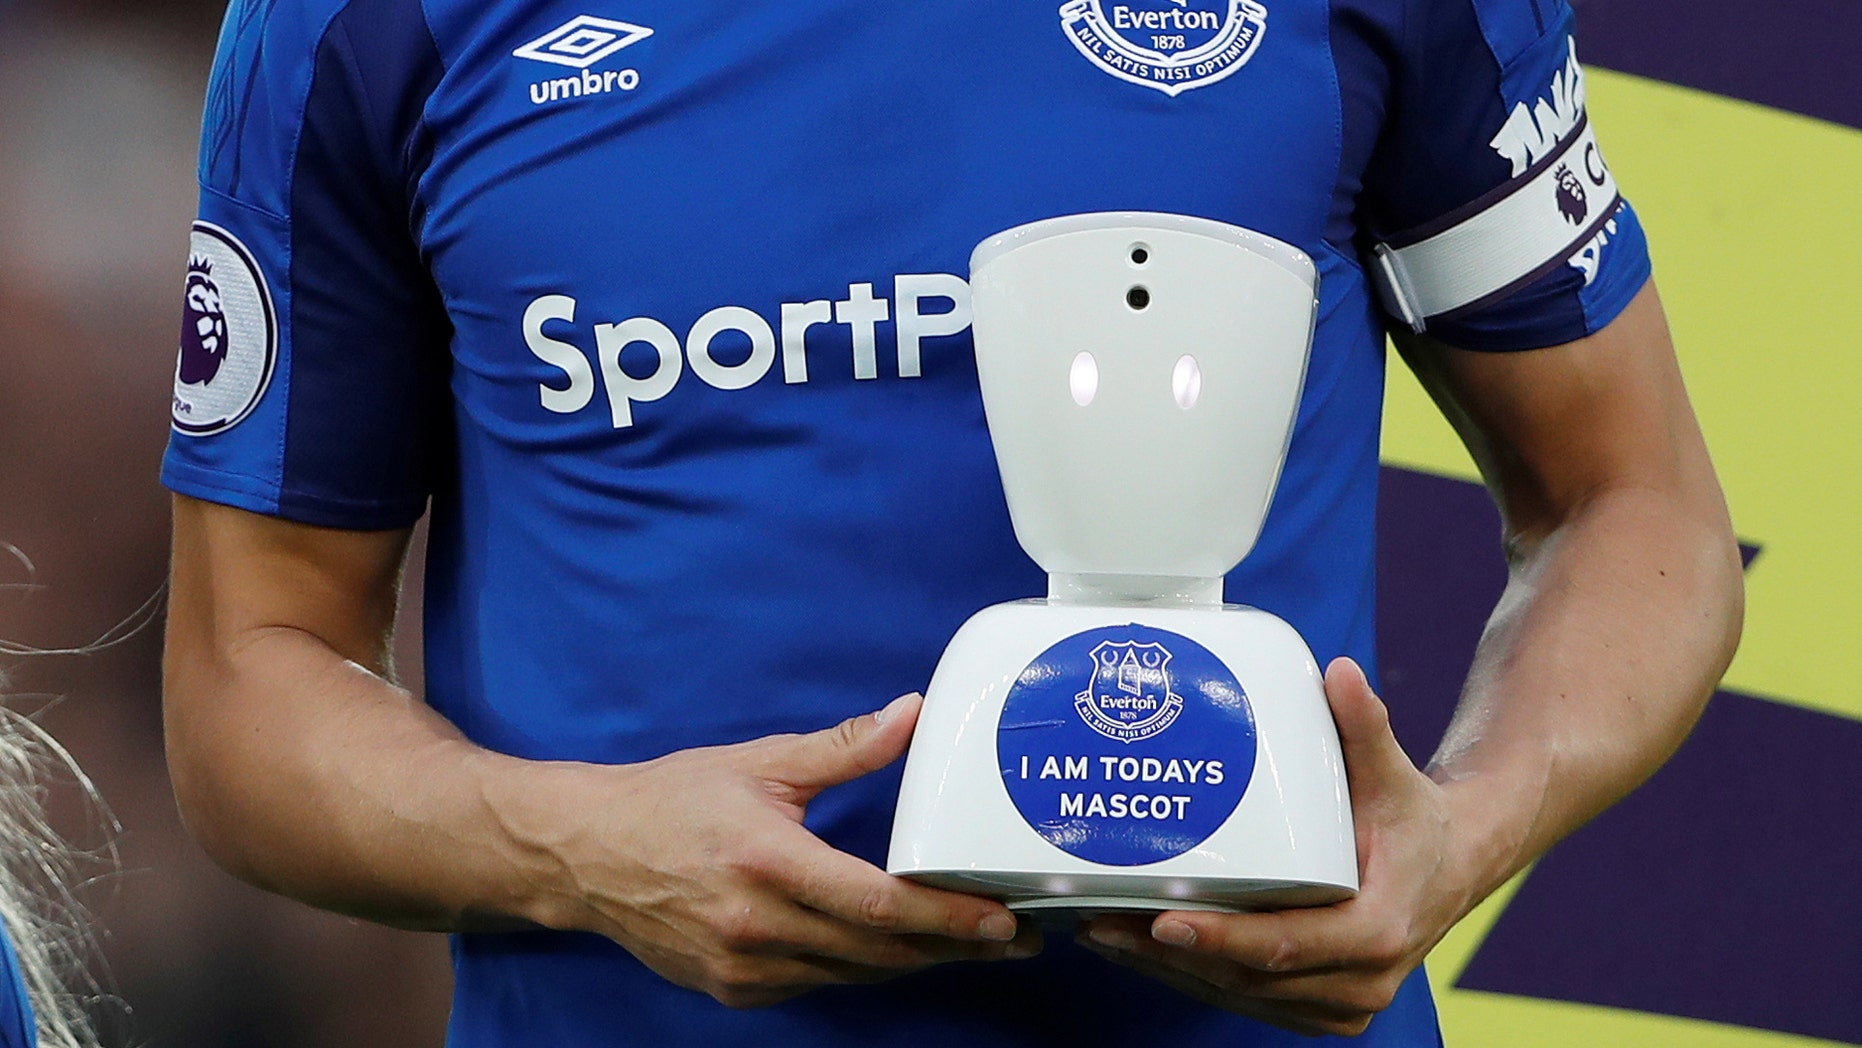 Everton v Newcastle United - Goodison Park, Liverpool, Britain - April 23, 2018 Everton's Phil Jagielka with a robot mascot before the match (Action Images via Reuters/Lee Smith)